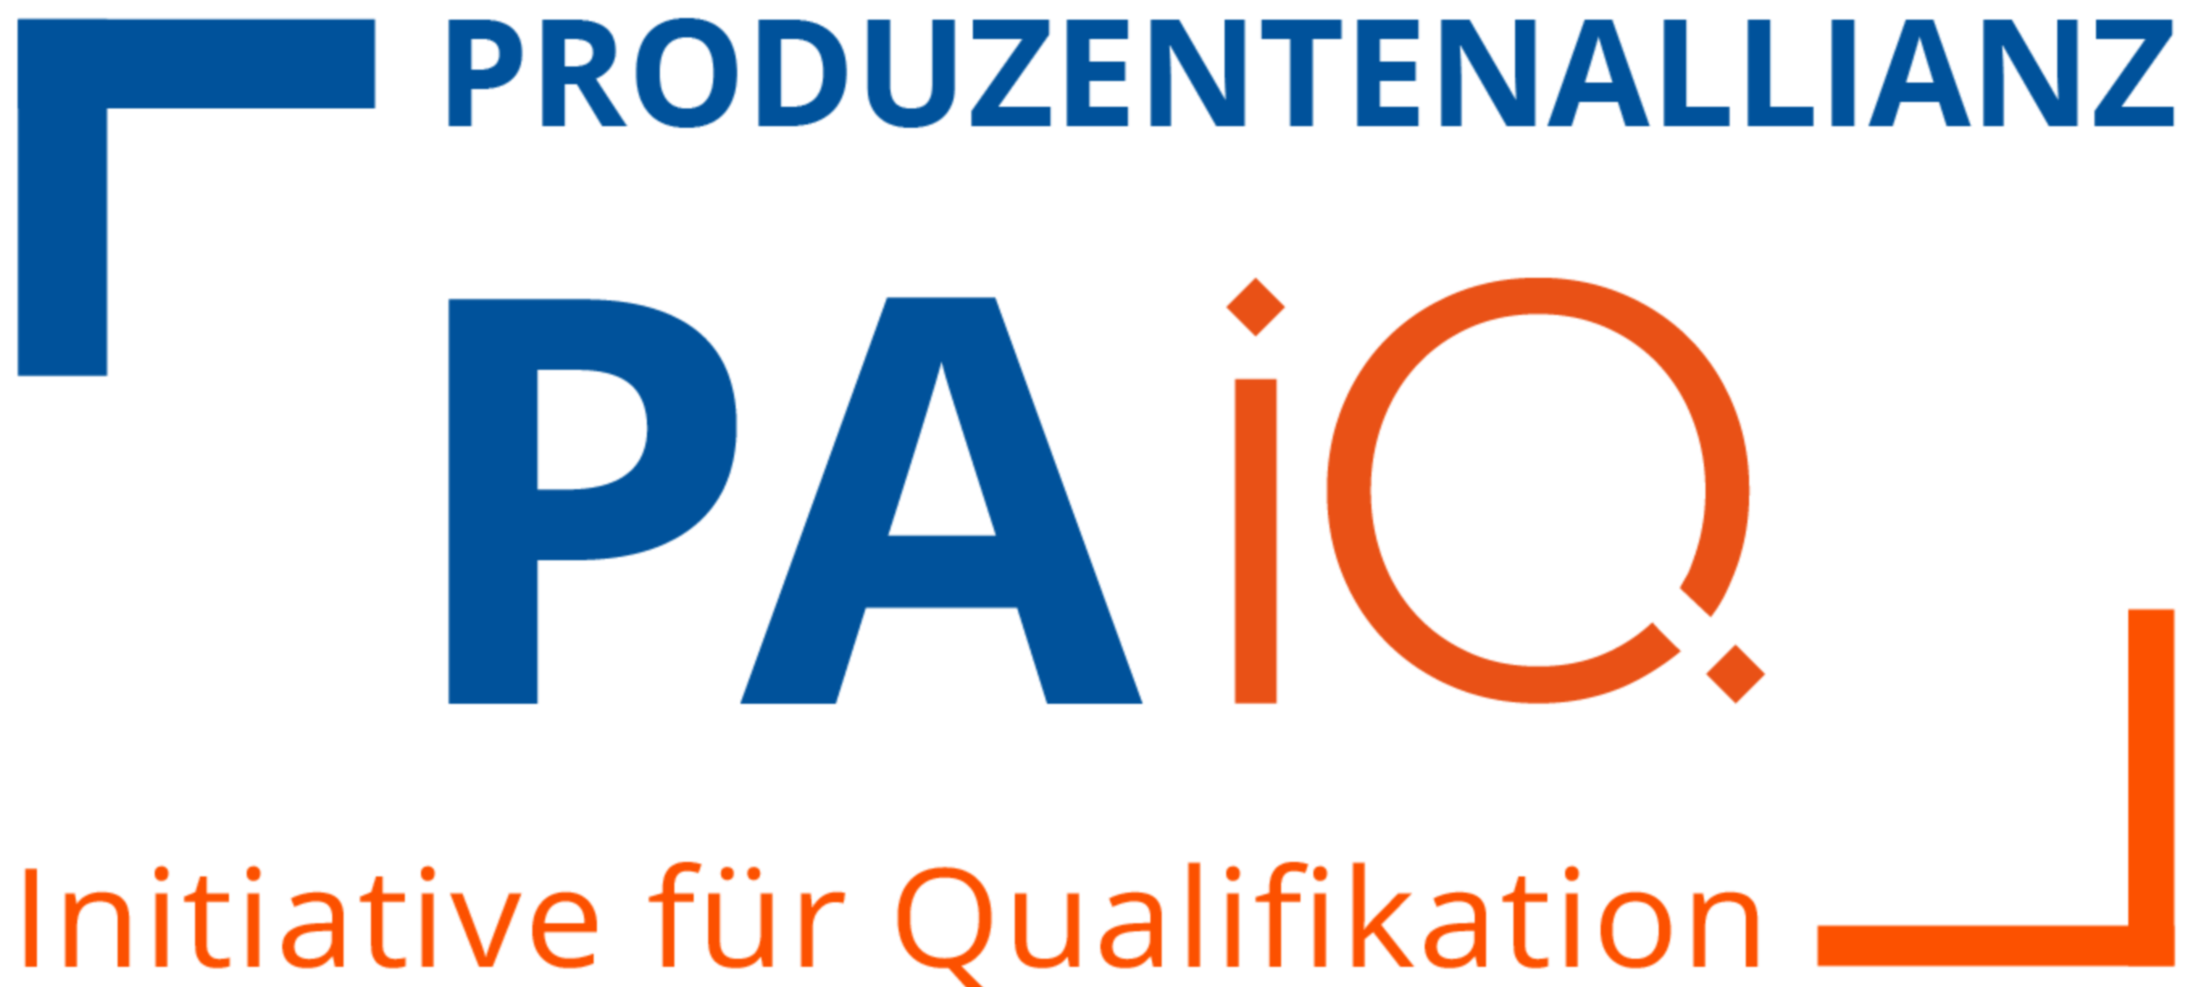 Initiative für Qualifikation